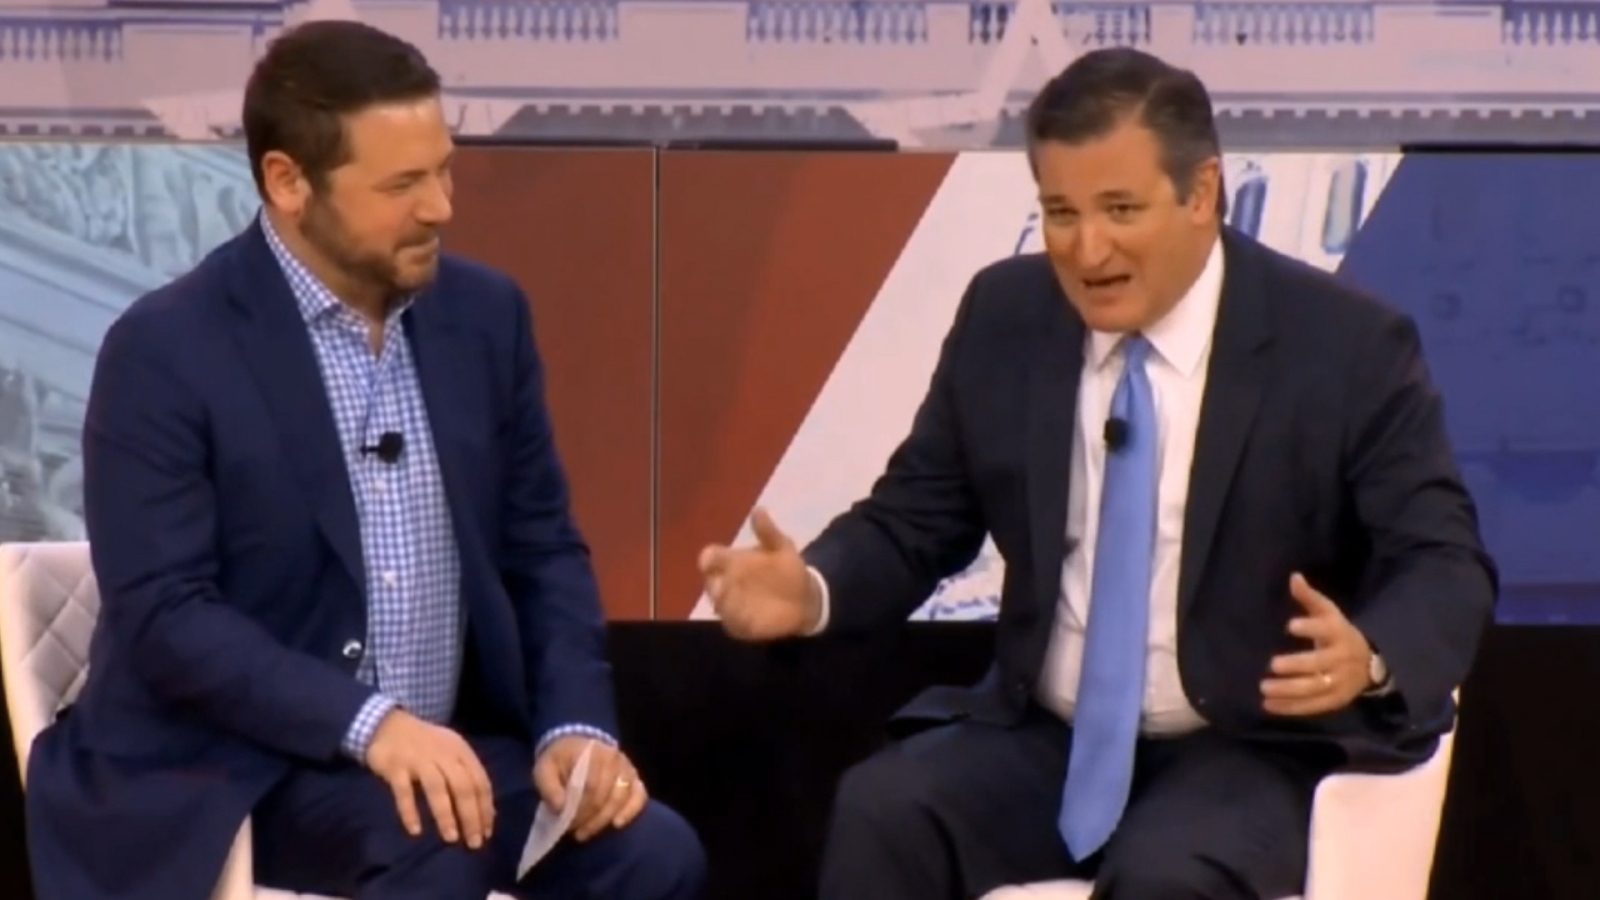 Ted Cruz at CPAC: 'Democrats are the party of Lisa Simpson'